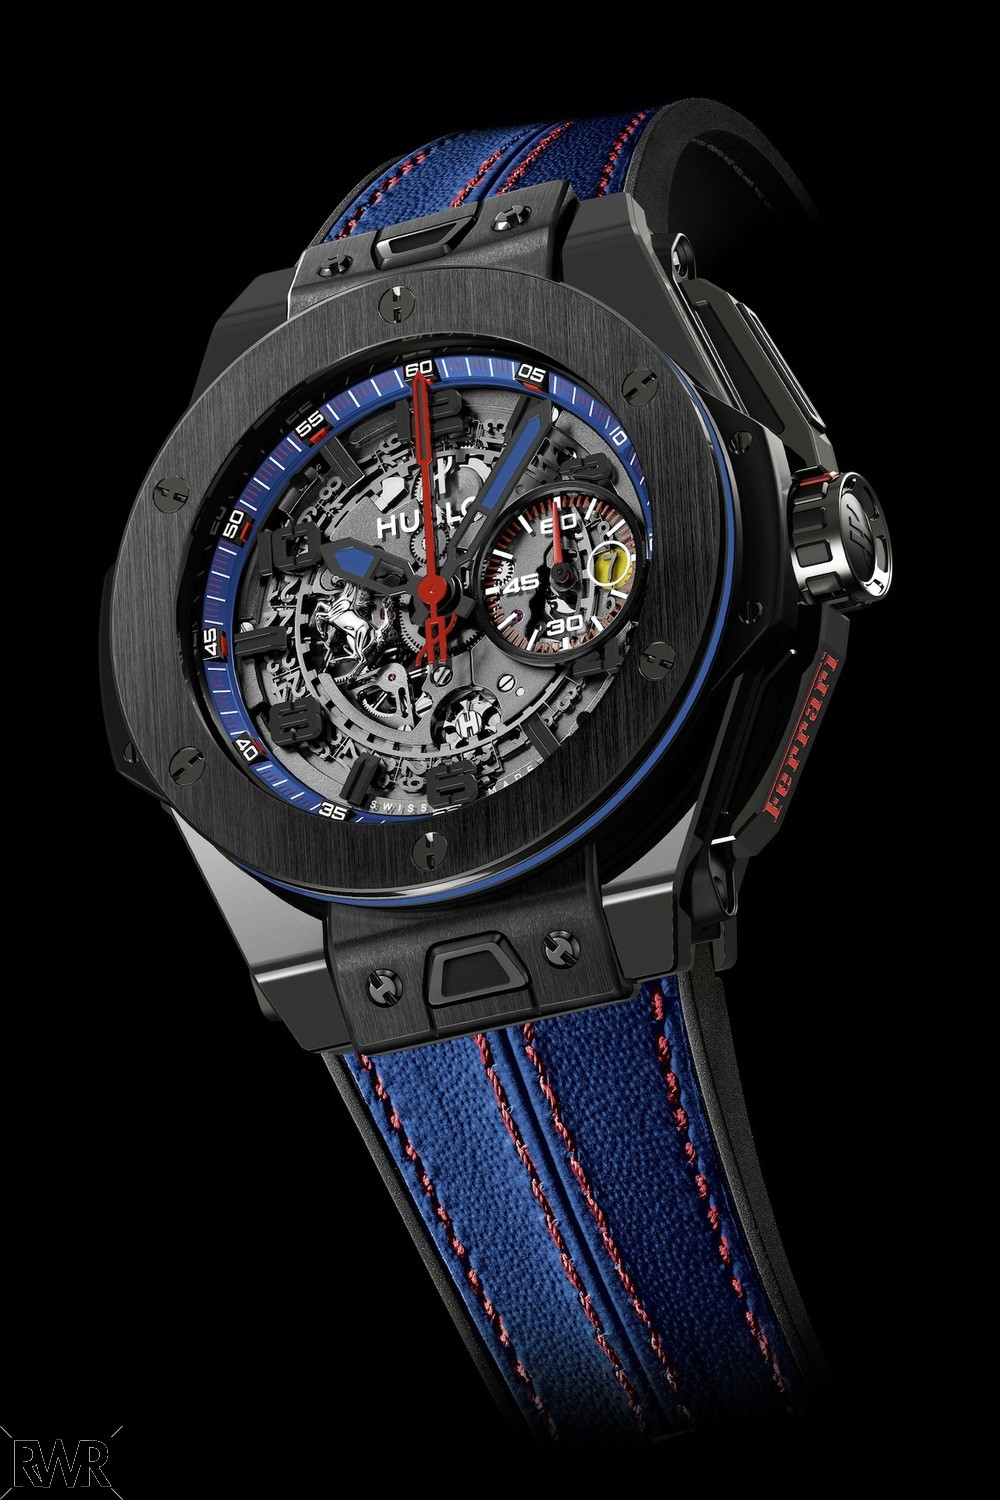 Replica Hublot Big Bang Ferrari Beverly Hills Watch 401.CX.0123.VR.BHB13